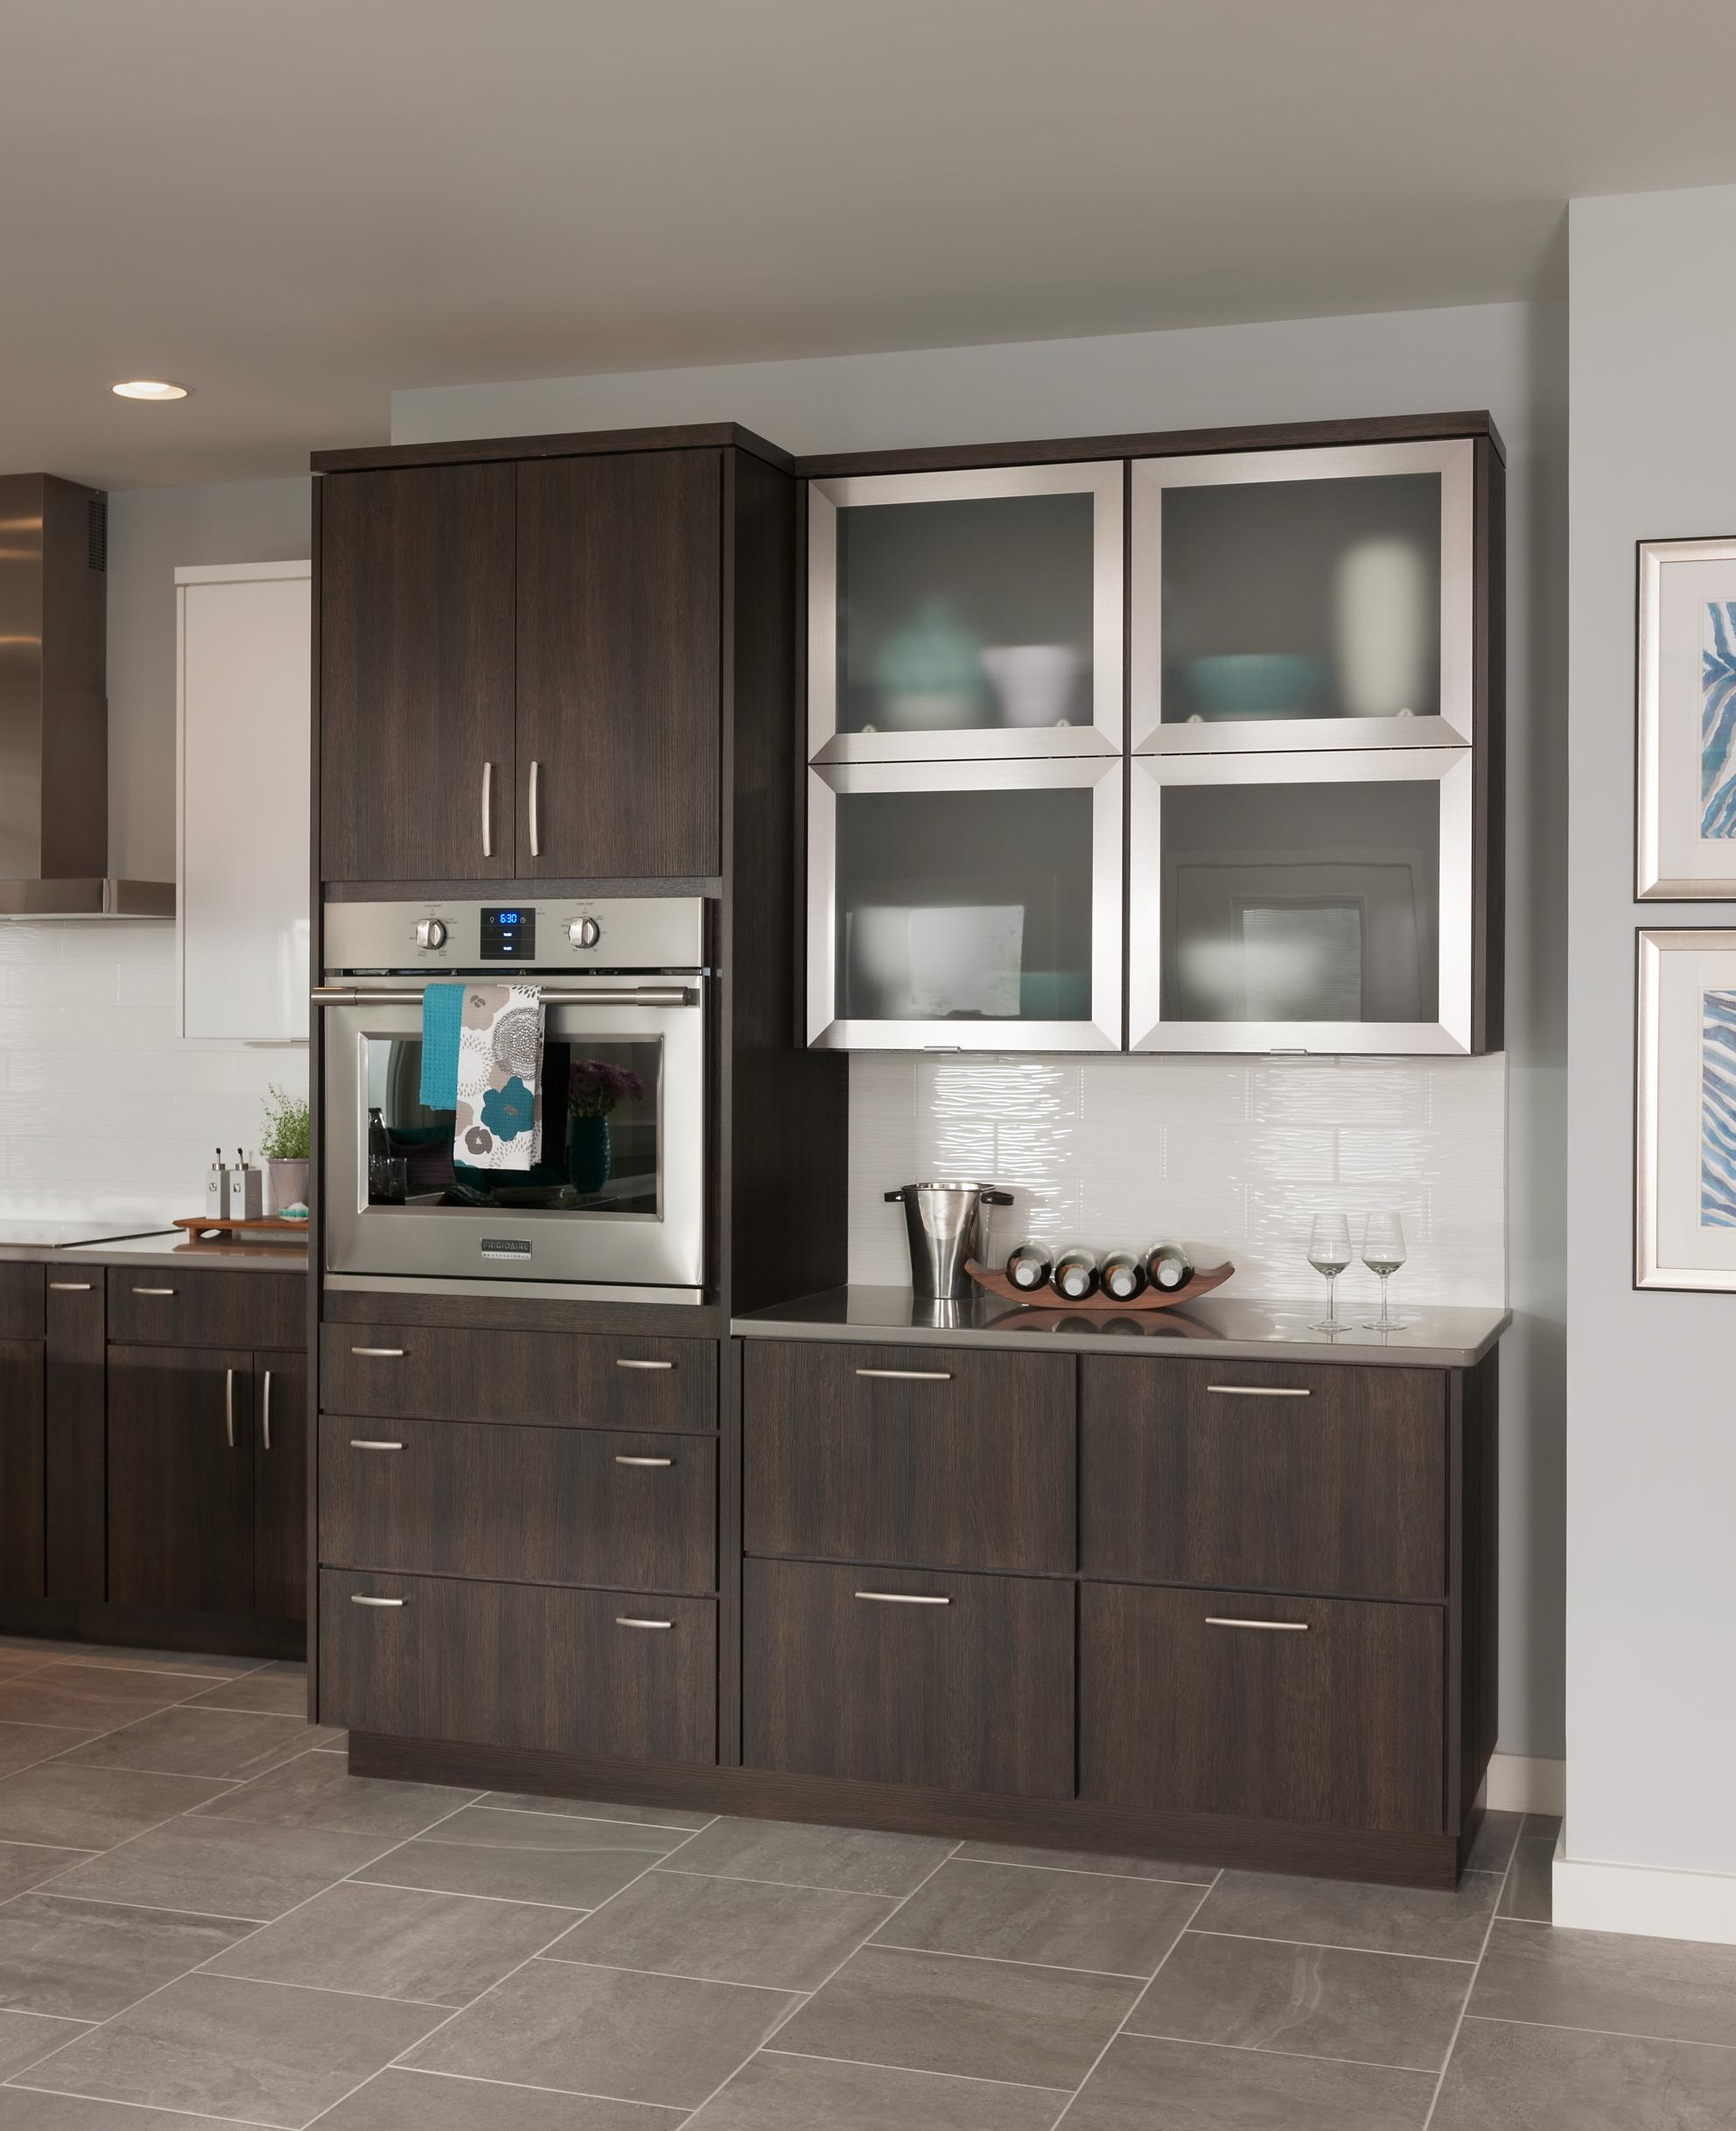 Hilton And Denali Schuler Cabinetry At Lowes